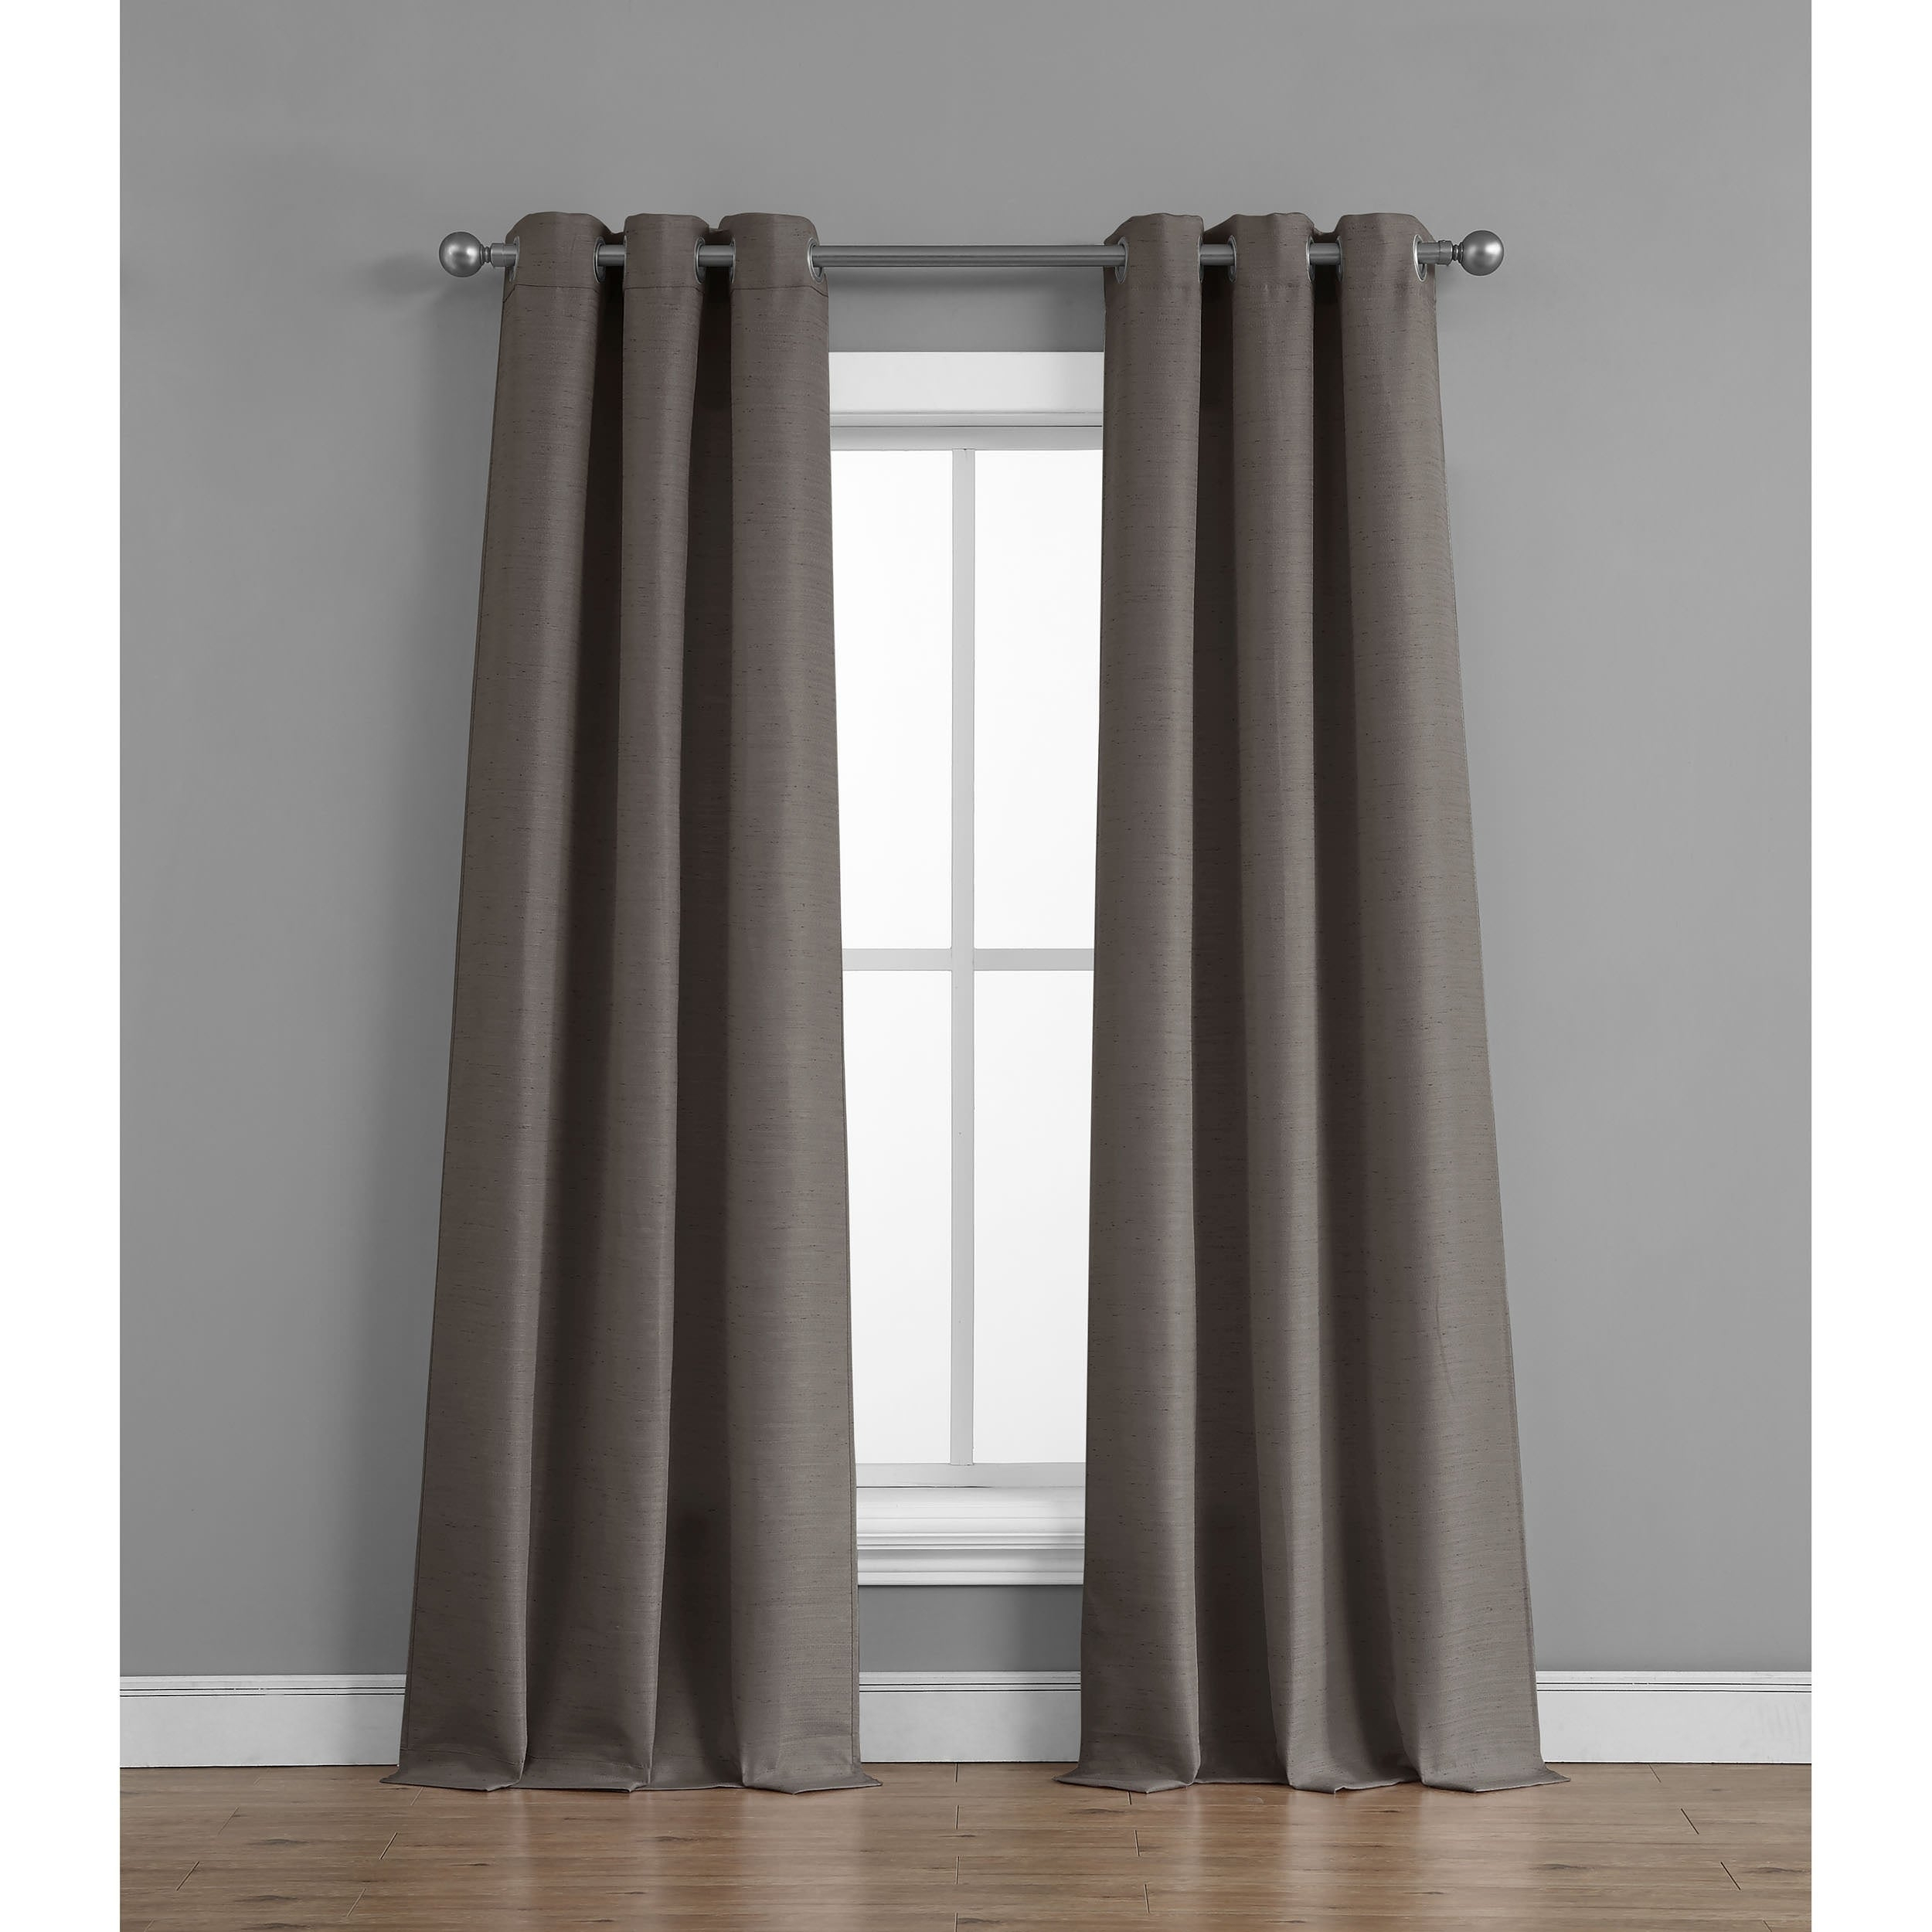 Tribeca Home Raw Faux Silk Grommet Curtain Panel Pair Within Overseas Faux Silk Blackout Curtain Panel Pairs (View 5 of 20)